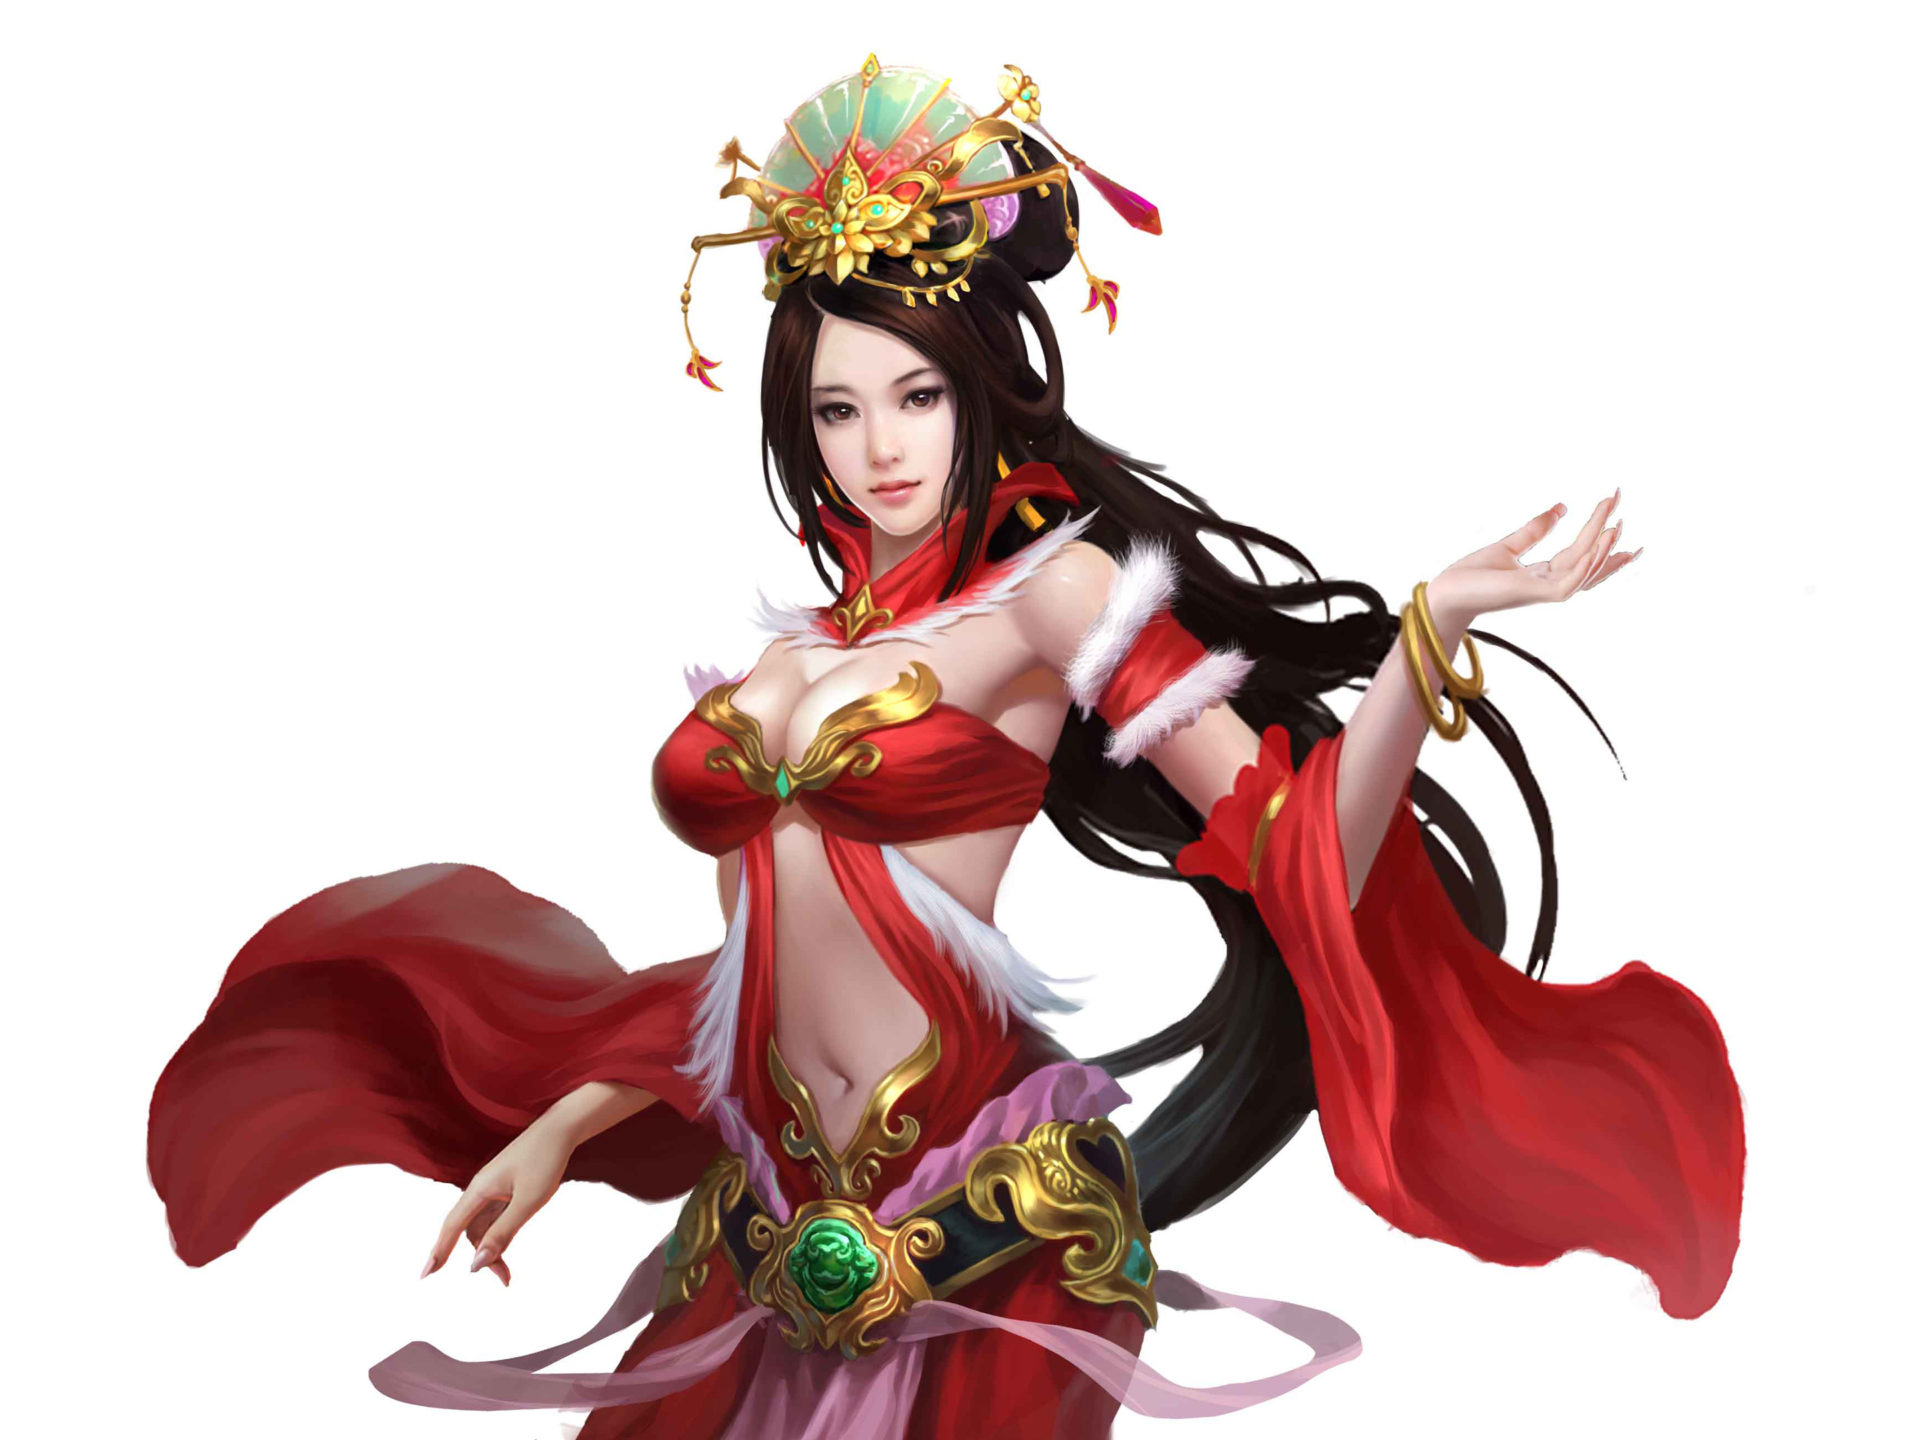 Dancing Girl Wallpapers For Mobile Phones Red Dragon Beautiful Oriental Girl Red Clothing